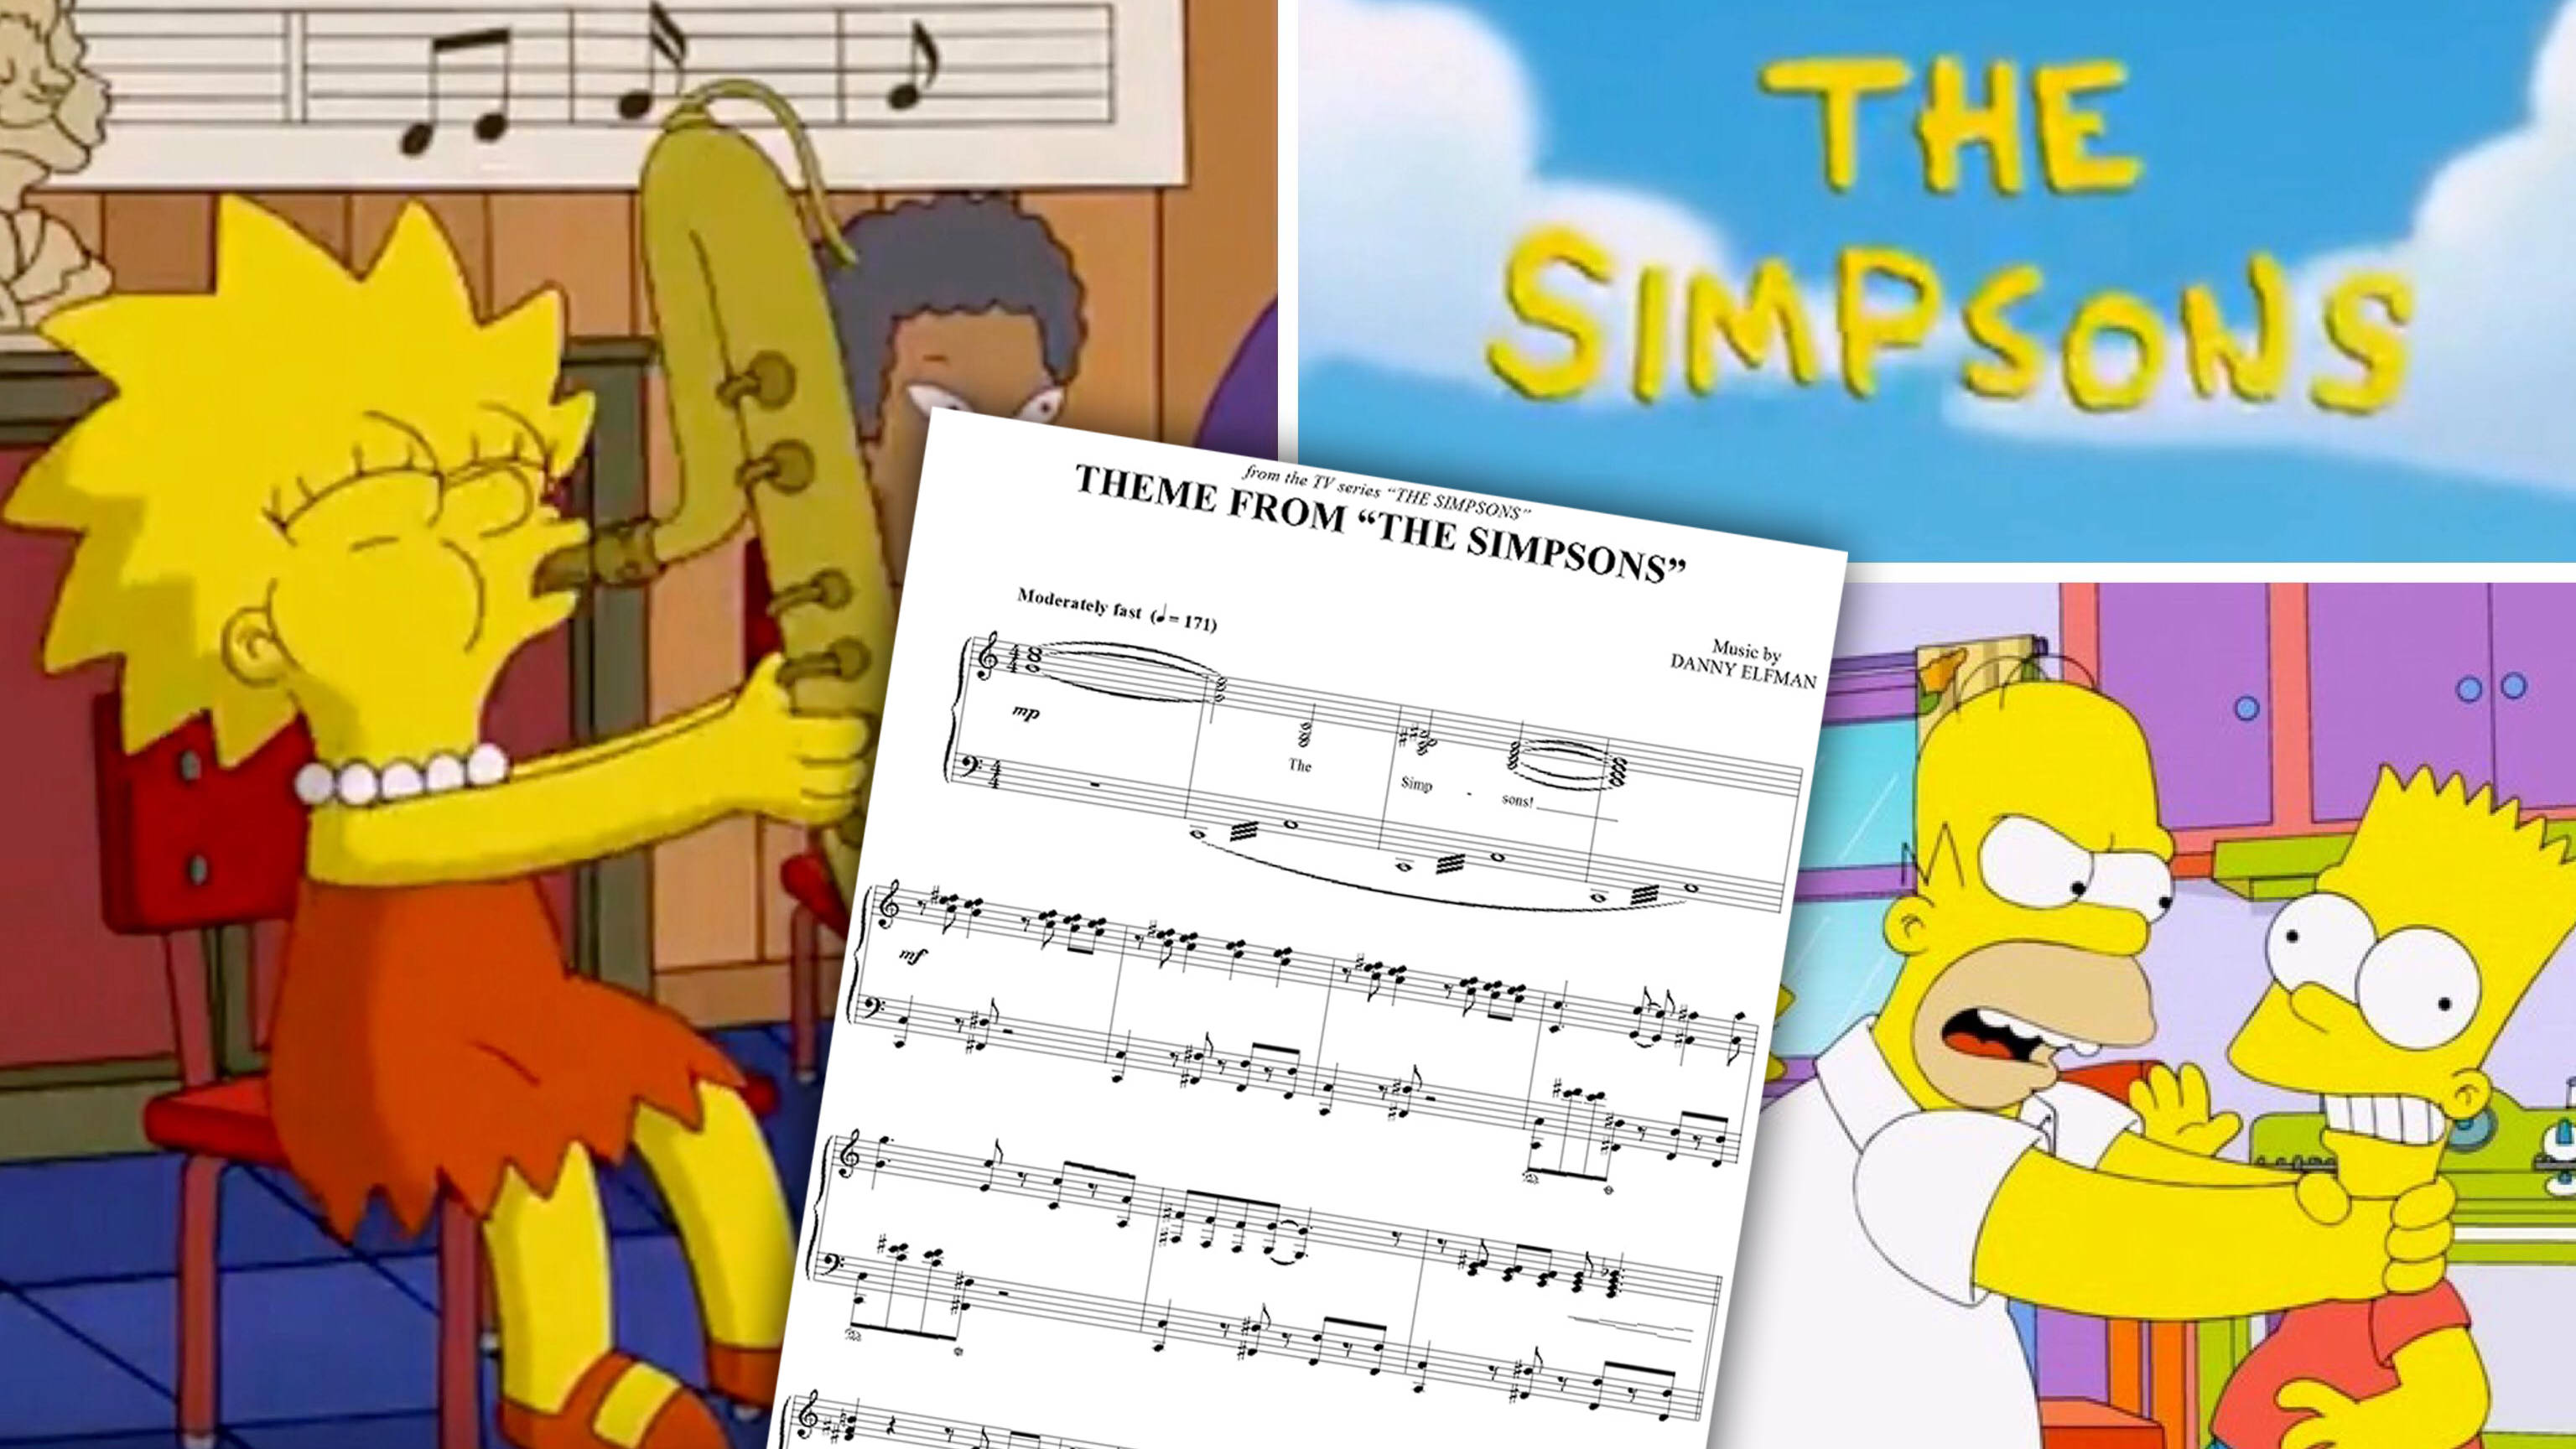 The Simpsons Theme Tune Is An Epic Symphonic Masterpiece Here S Exactly Why Classic Fm